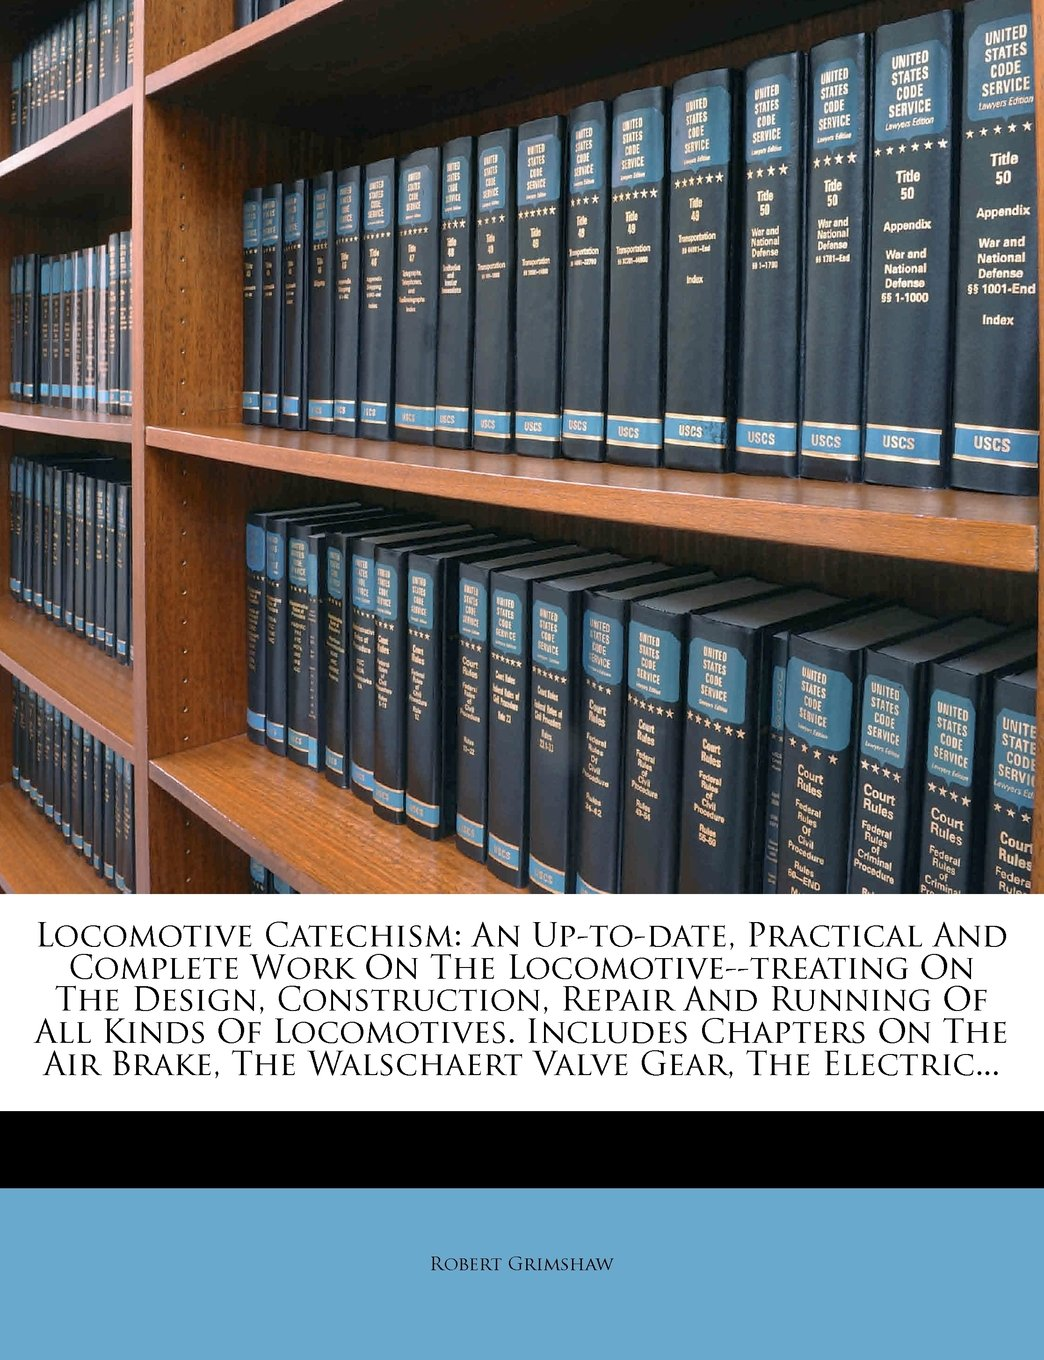 Download Locomotive Catechism: An Up-to-date, Practical And Complete Work On The Locomotive--treating On The Design, Construction, Repair And Running Of All ... The Walschaert Valve Gear, The Electric... ebook